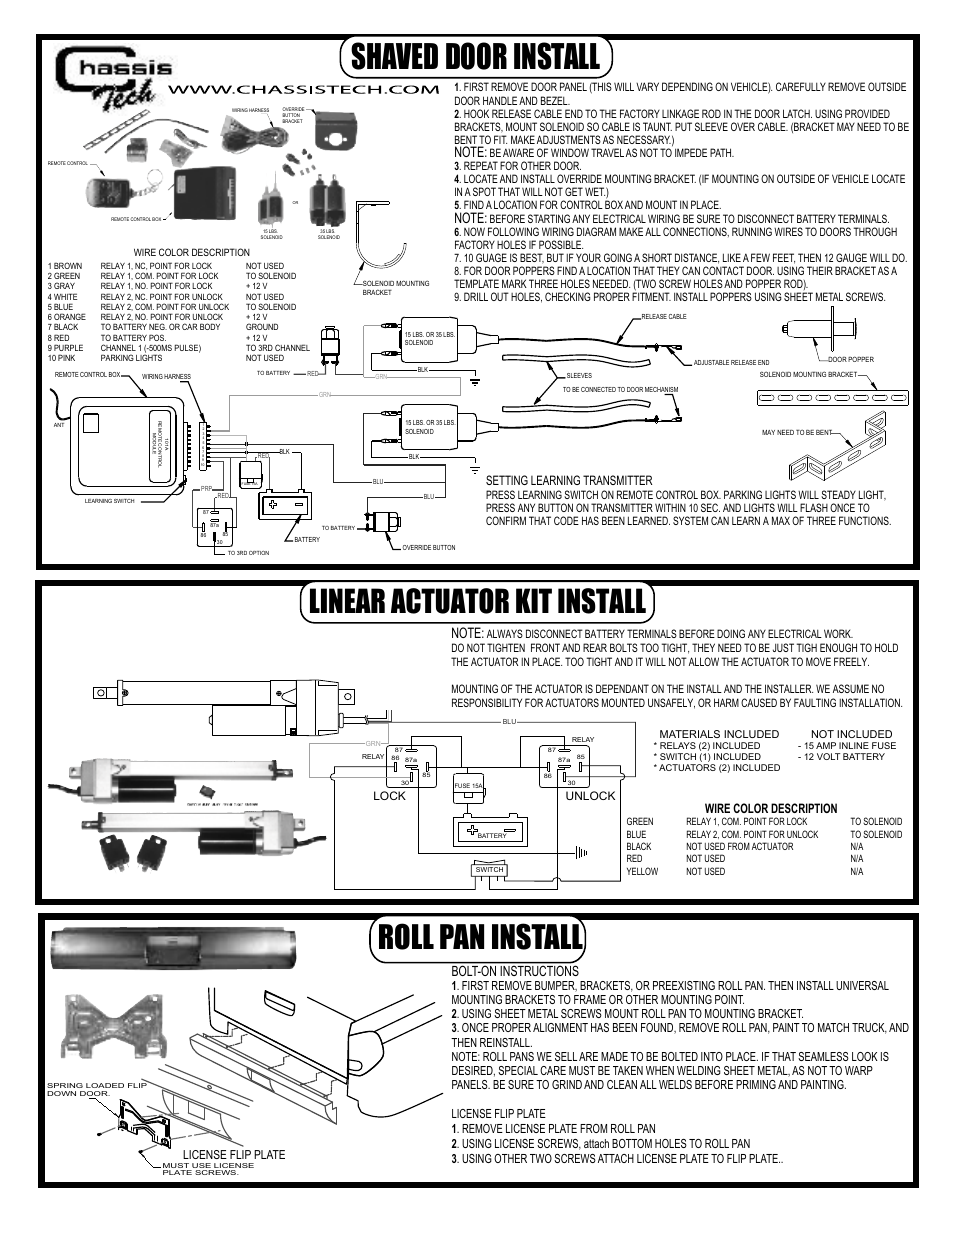 airbagit shaved door linear actuator roll pan page1 airbagit shaved door, linear actuator, roll pan user manual 1 page door popper relay wiring diagram at gsmx.co